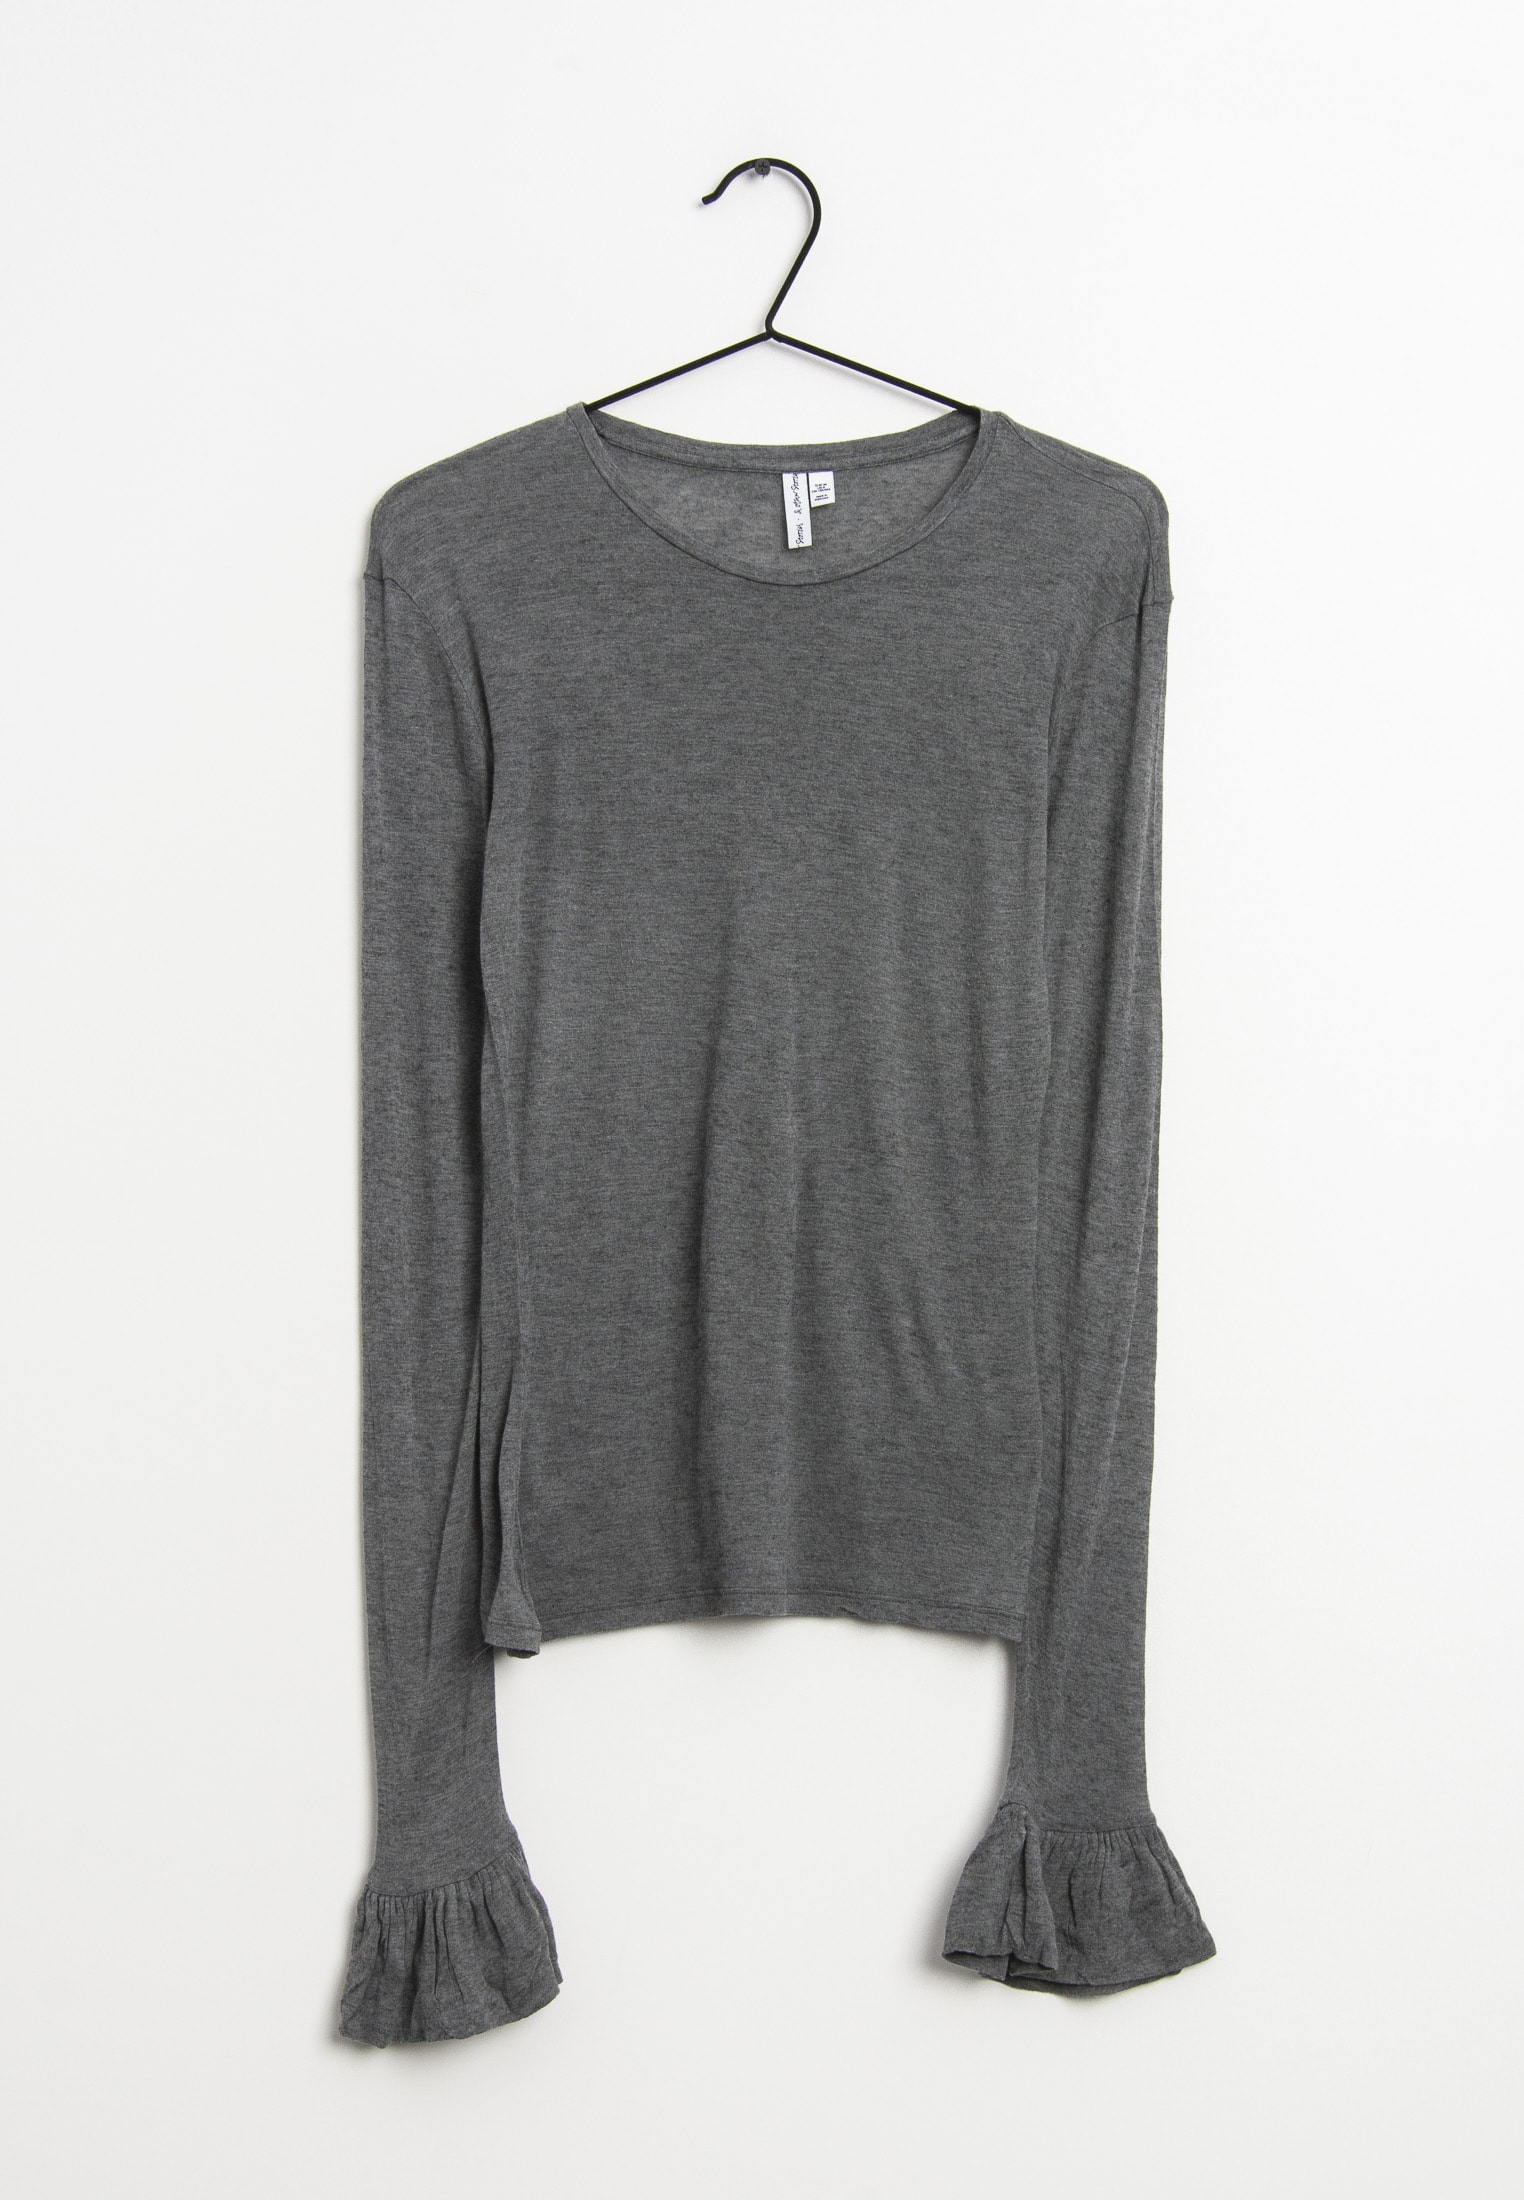 & other stories Bluse Grau Gr.38